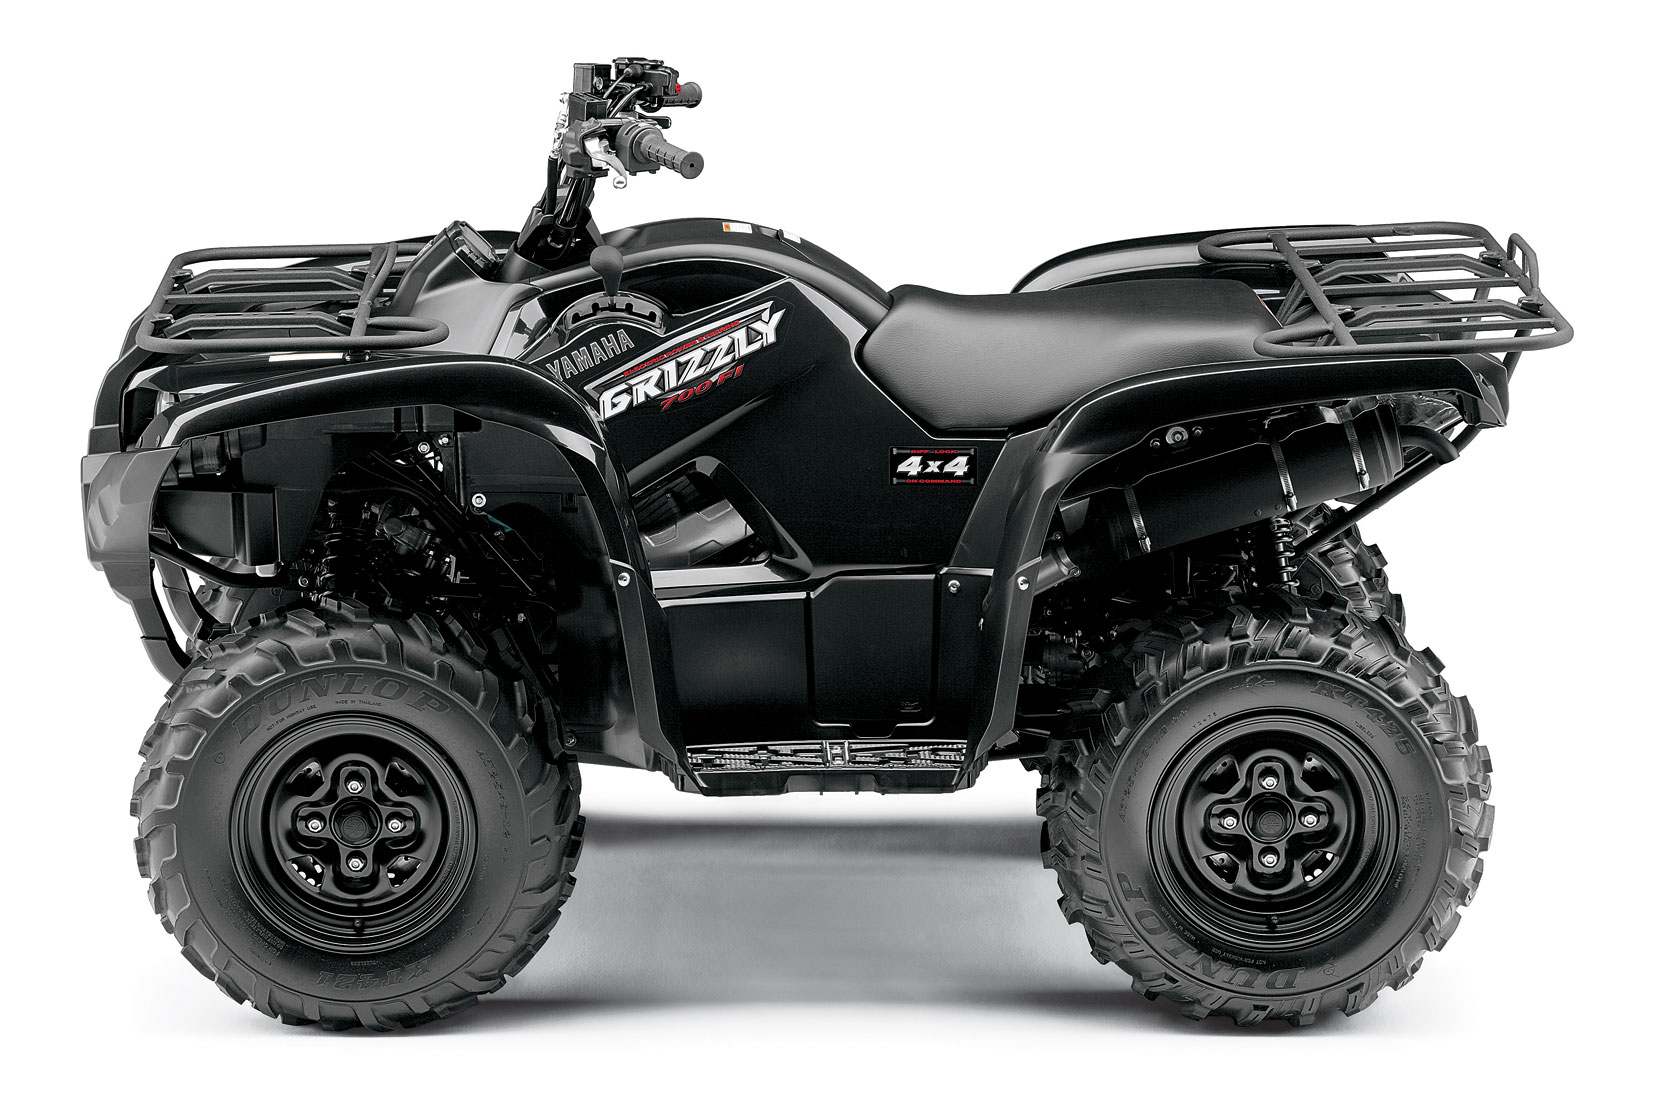 yamaha grizzly 700 fi eps specs 2008 2009 autoevolution. Black Bedroom Furniture Sets. Home Design Ideas